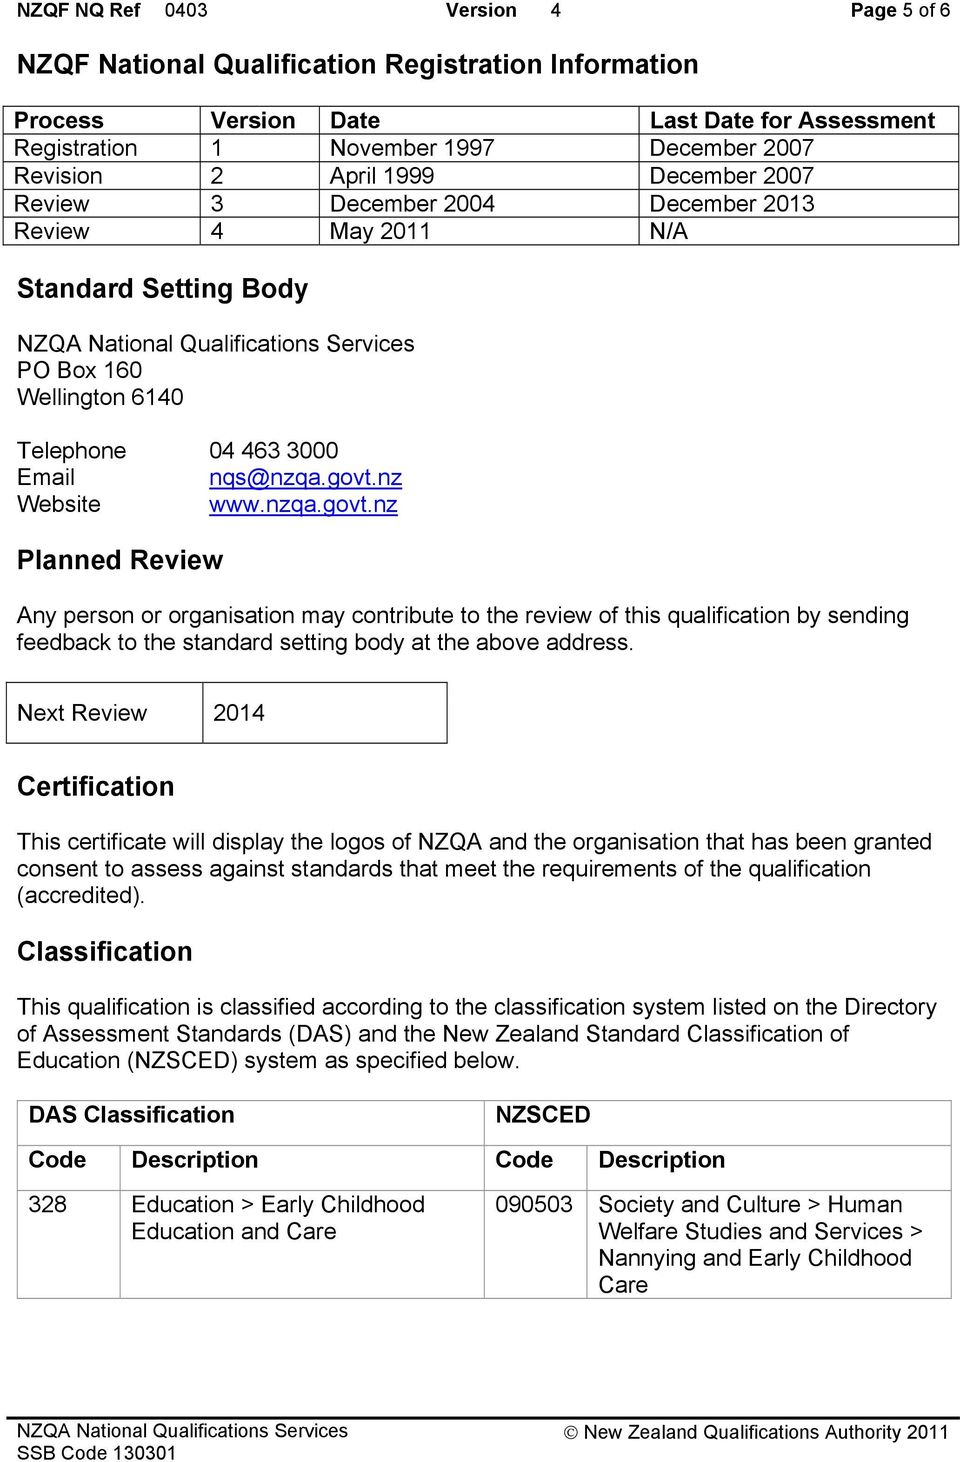 nz Website www.nzqa.govt.nz Planned Review Any person or organisation may contribute to the review of this qualification by sending feedback to the standard setting body at the above address.